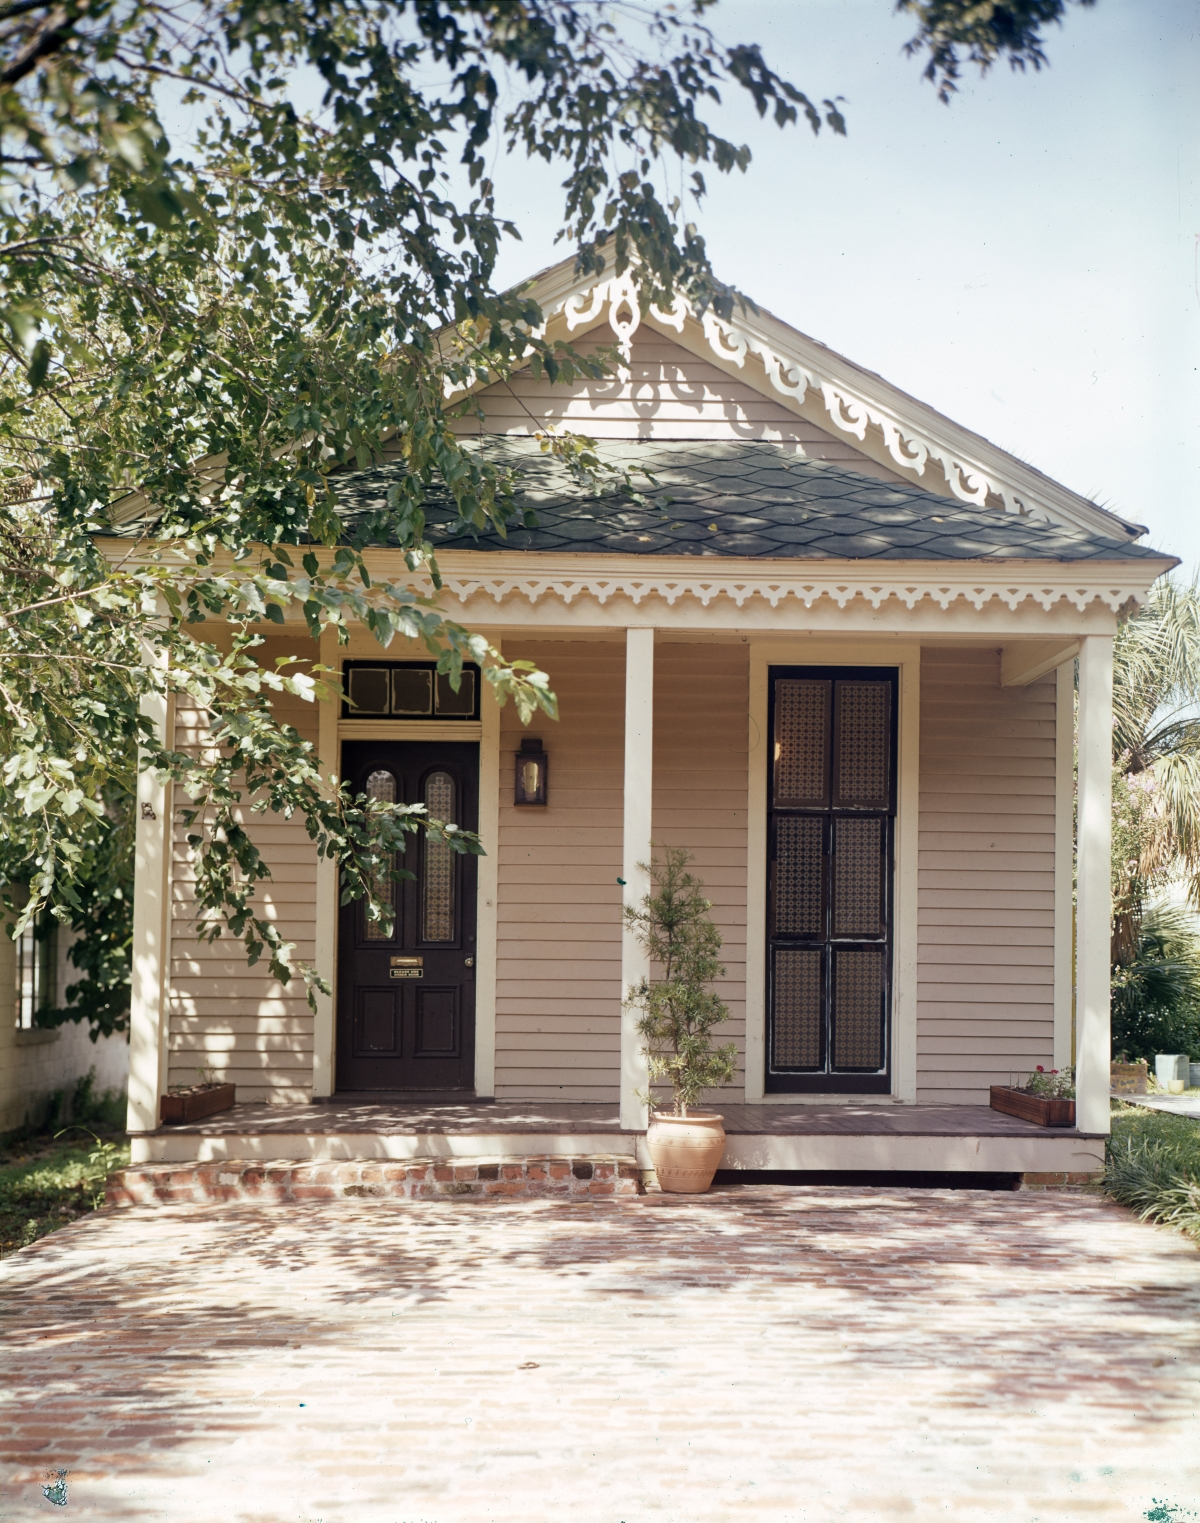 Home in the Pensacola Historic District.